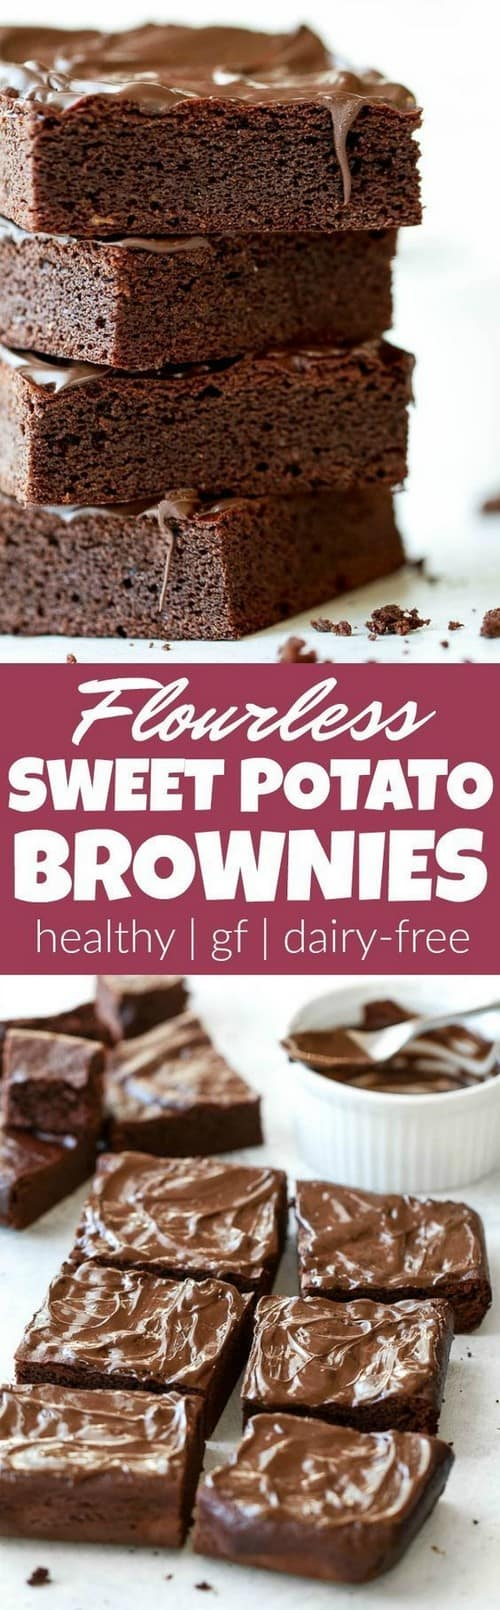 Mediterranean Flourless Sweet Potato Brownies